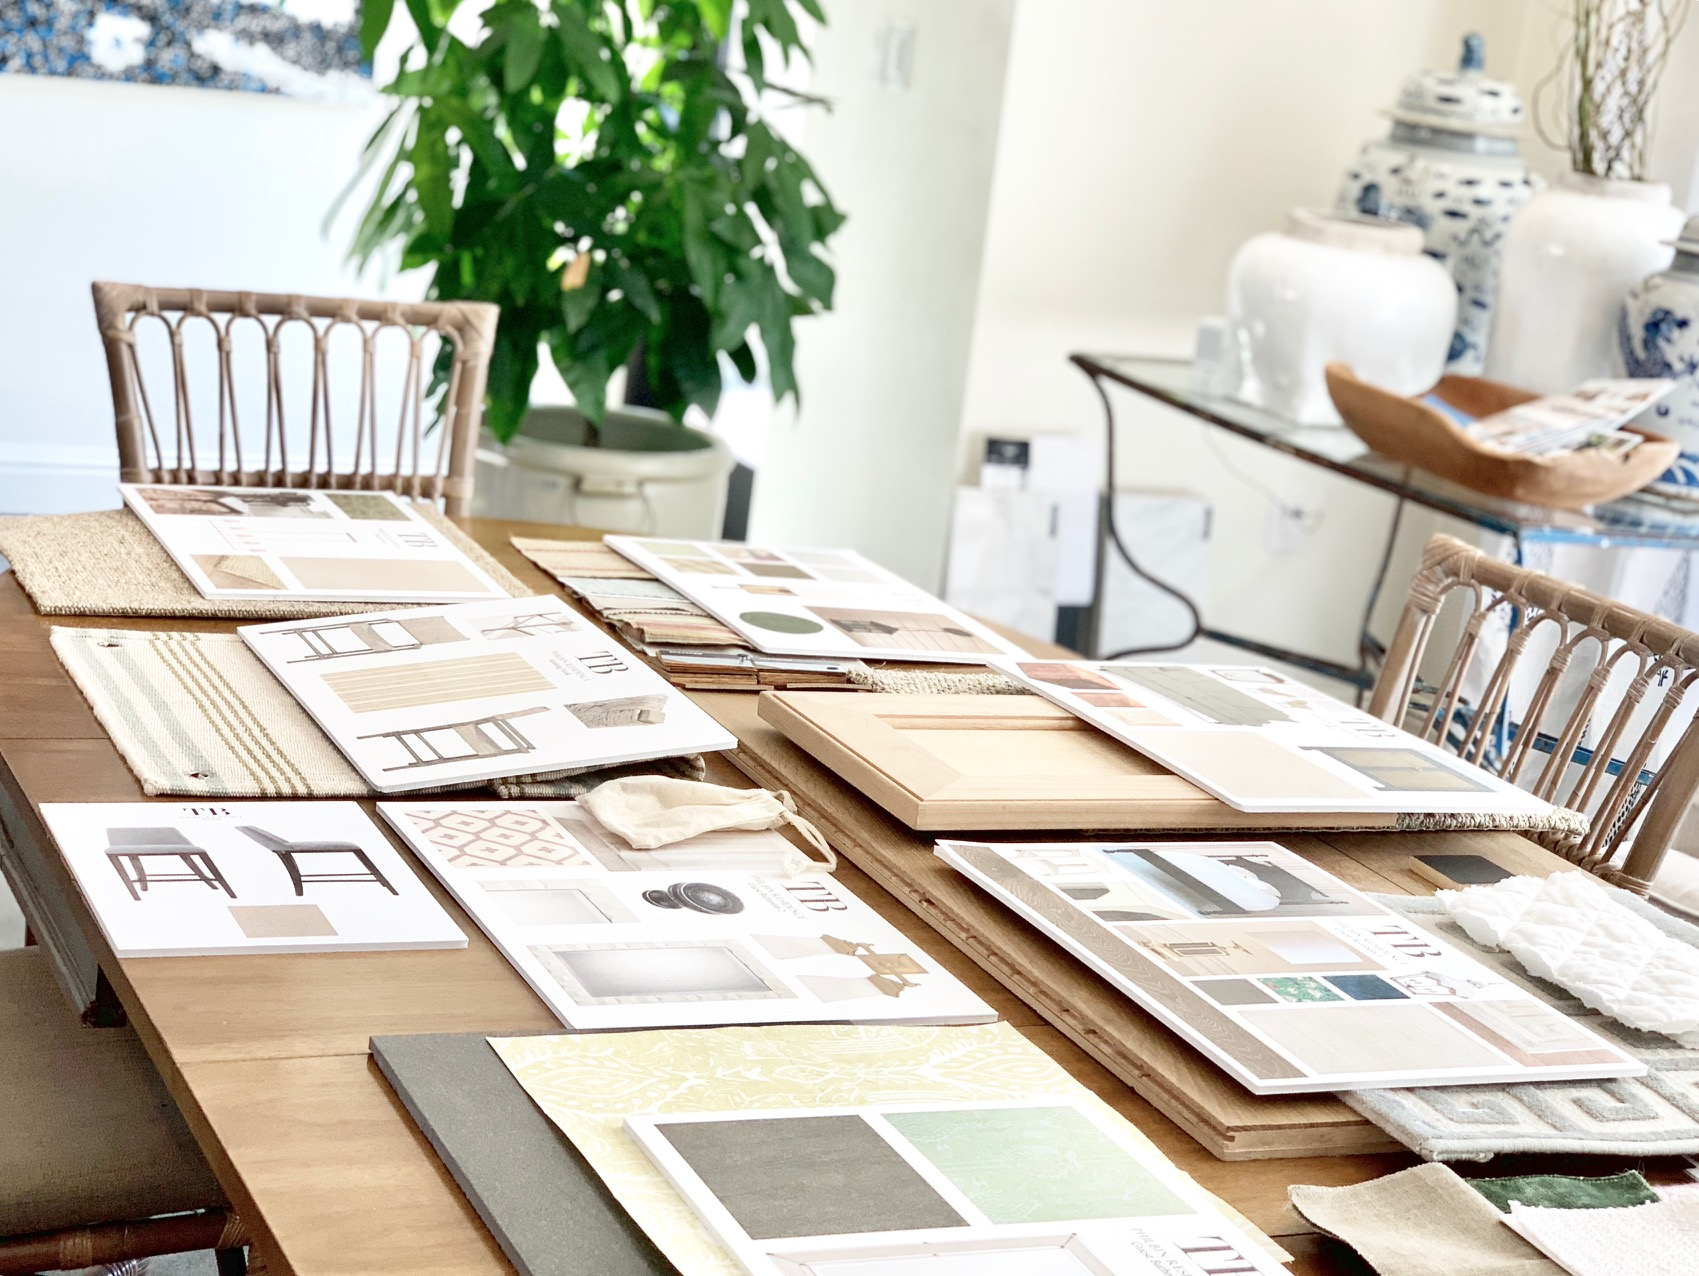 …Followed by furniture planning -